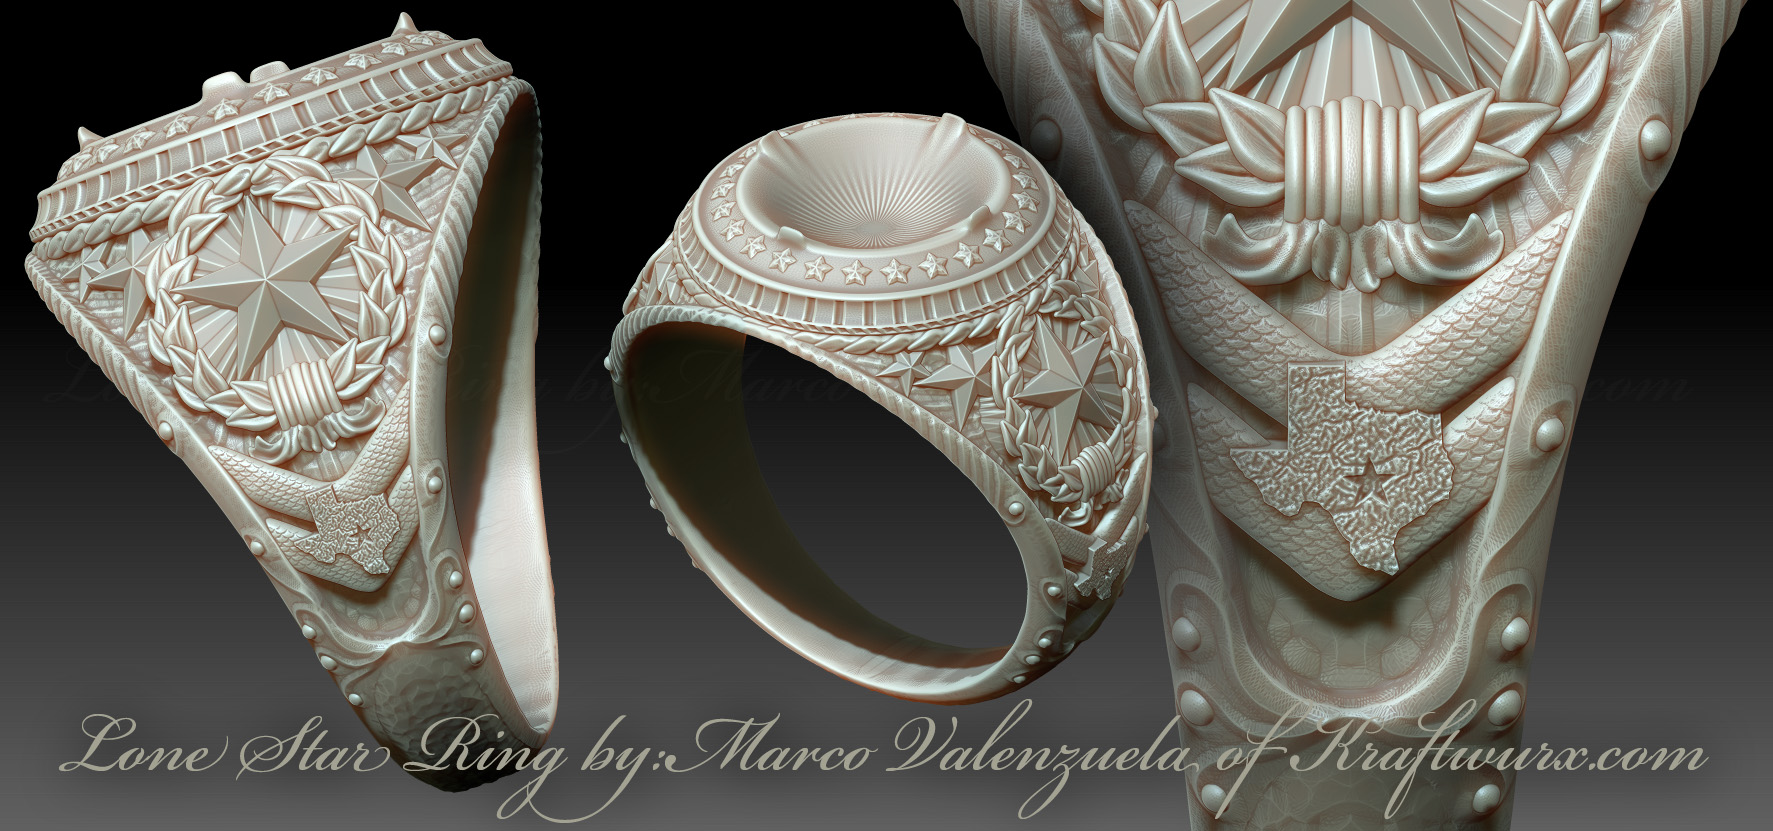 Lone Star Ring for 3d Printing / Jewelry